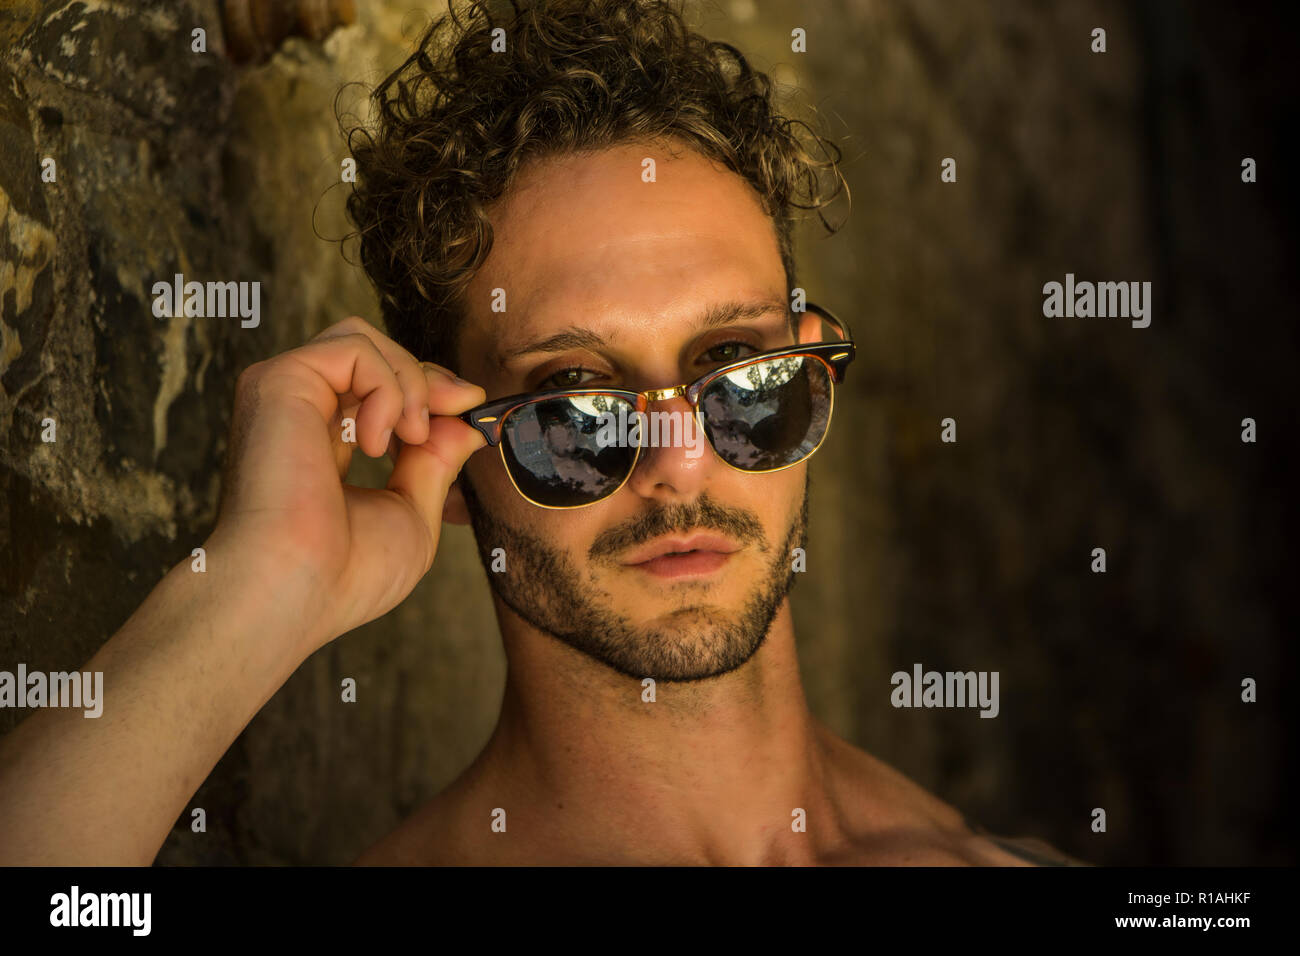 Headshot of handsome unshaved man wearing sunglasses outdoor in old town - Stock Image